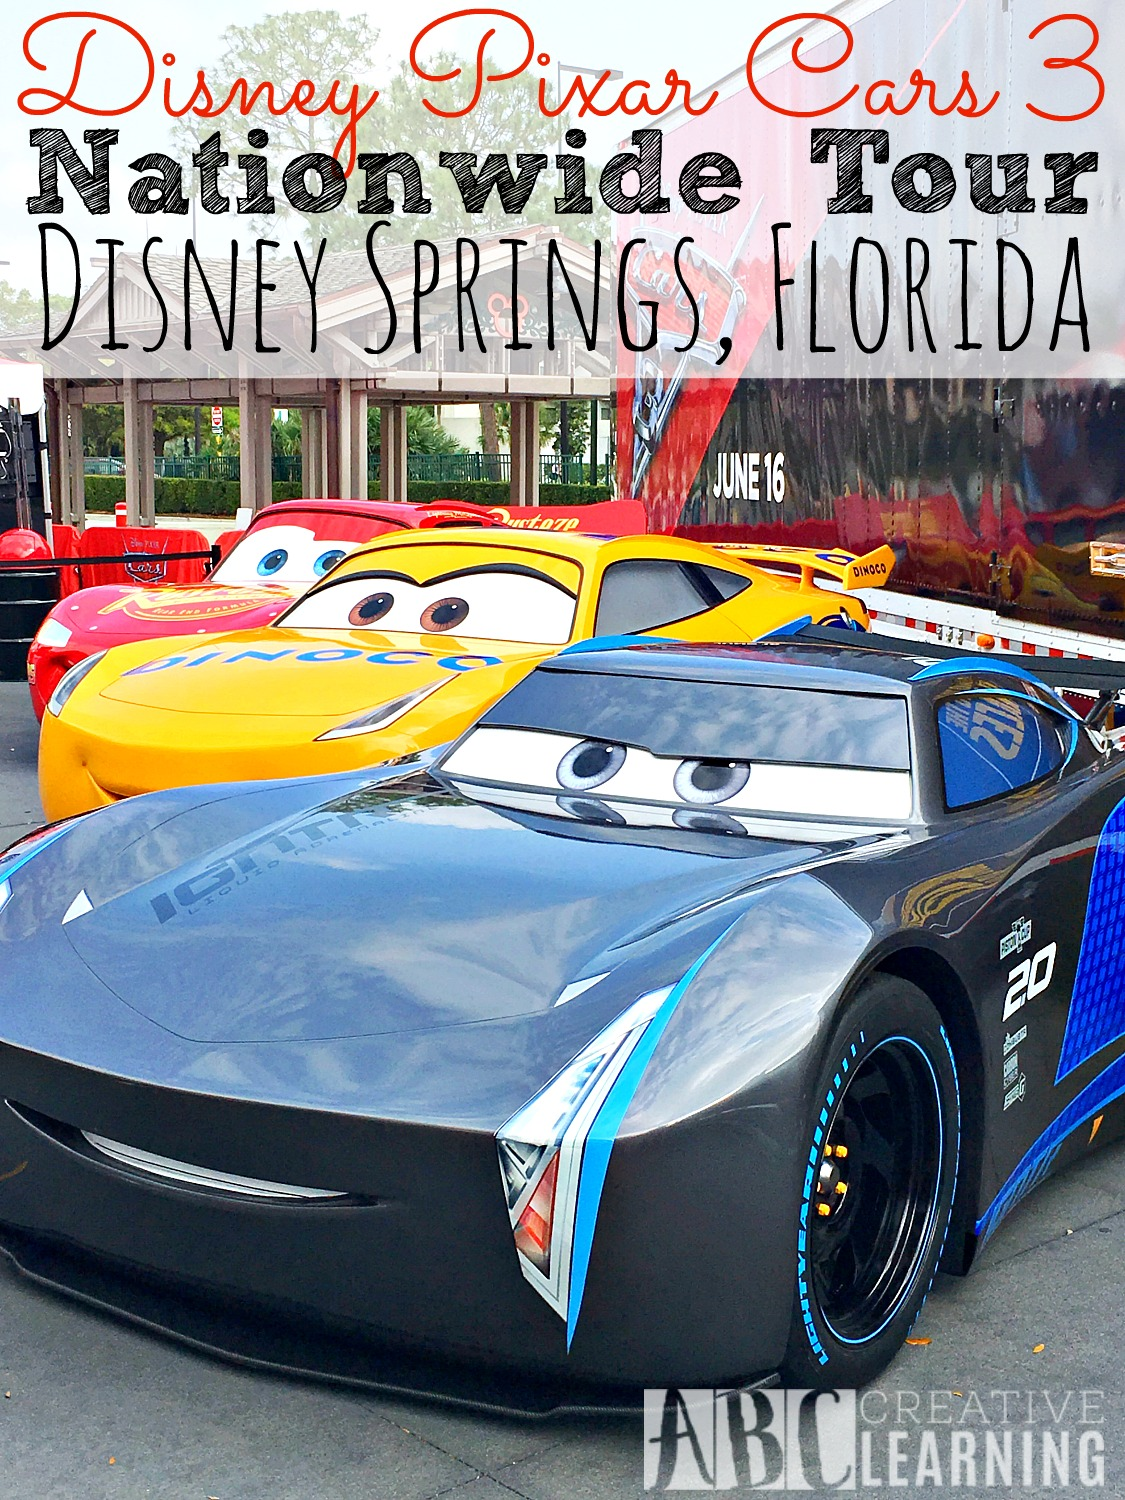 Disney Pixar Cars 3 Nationwide Tour